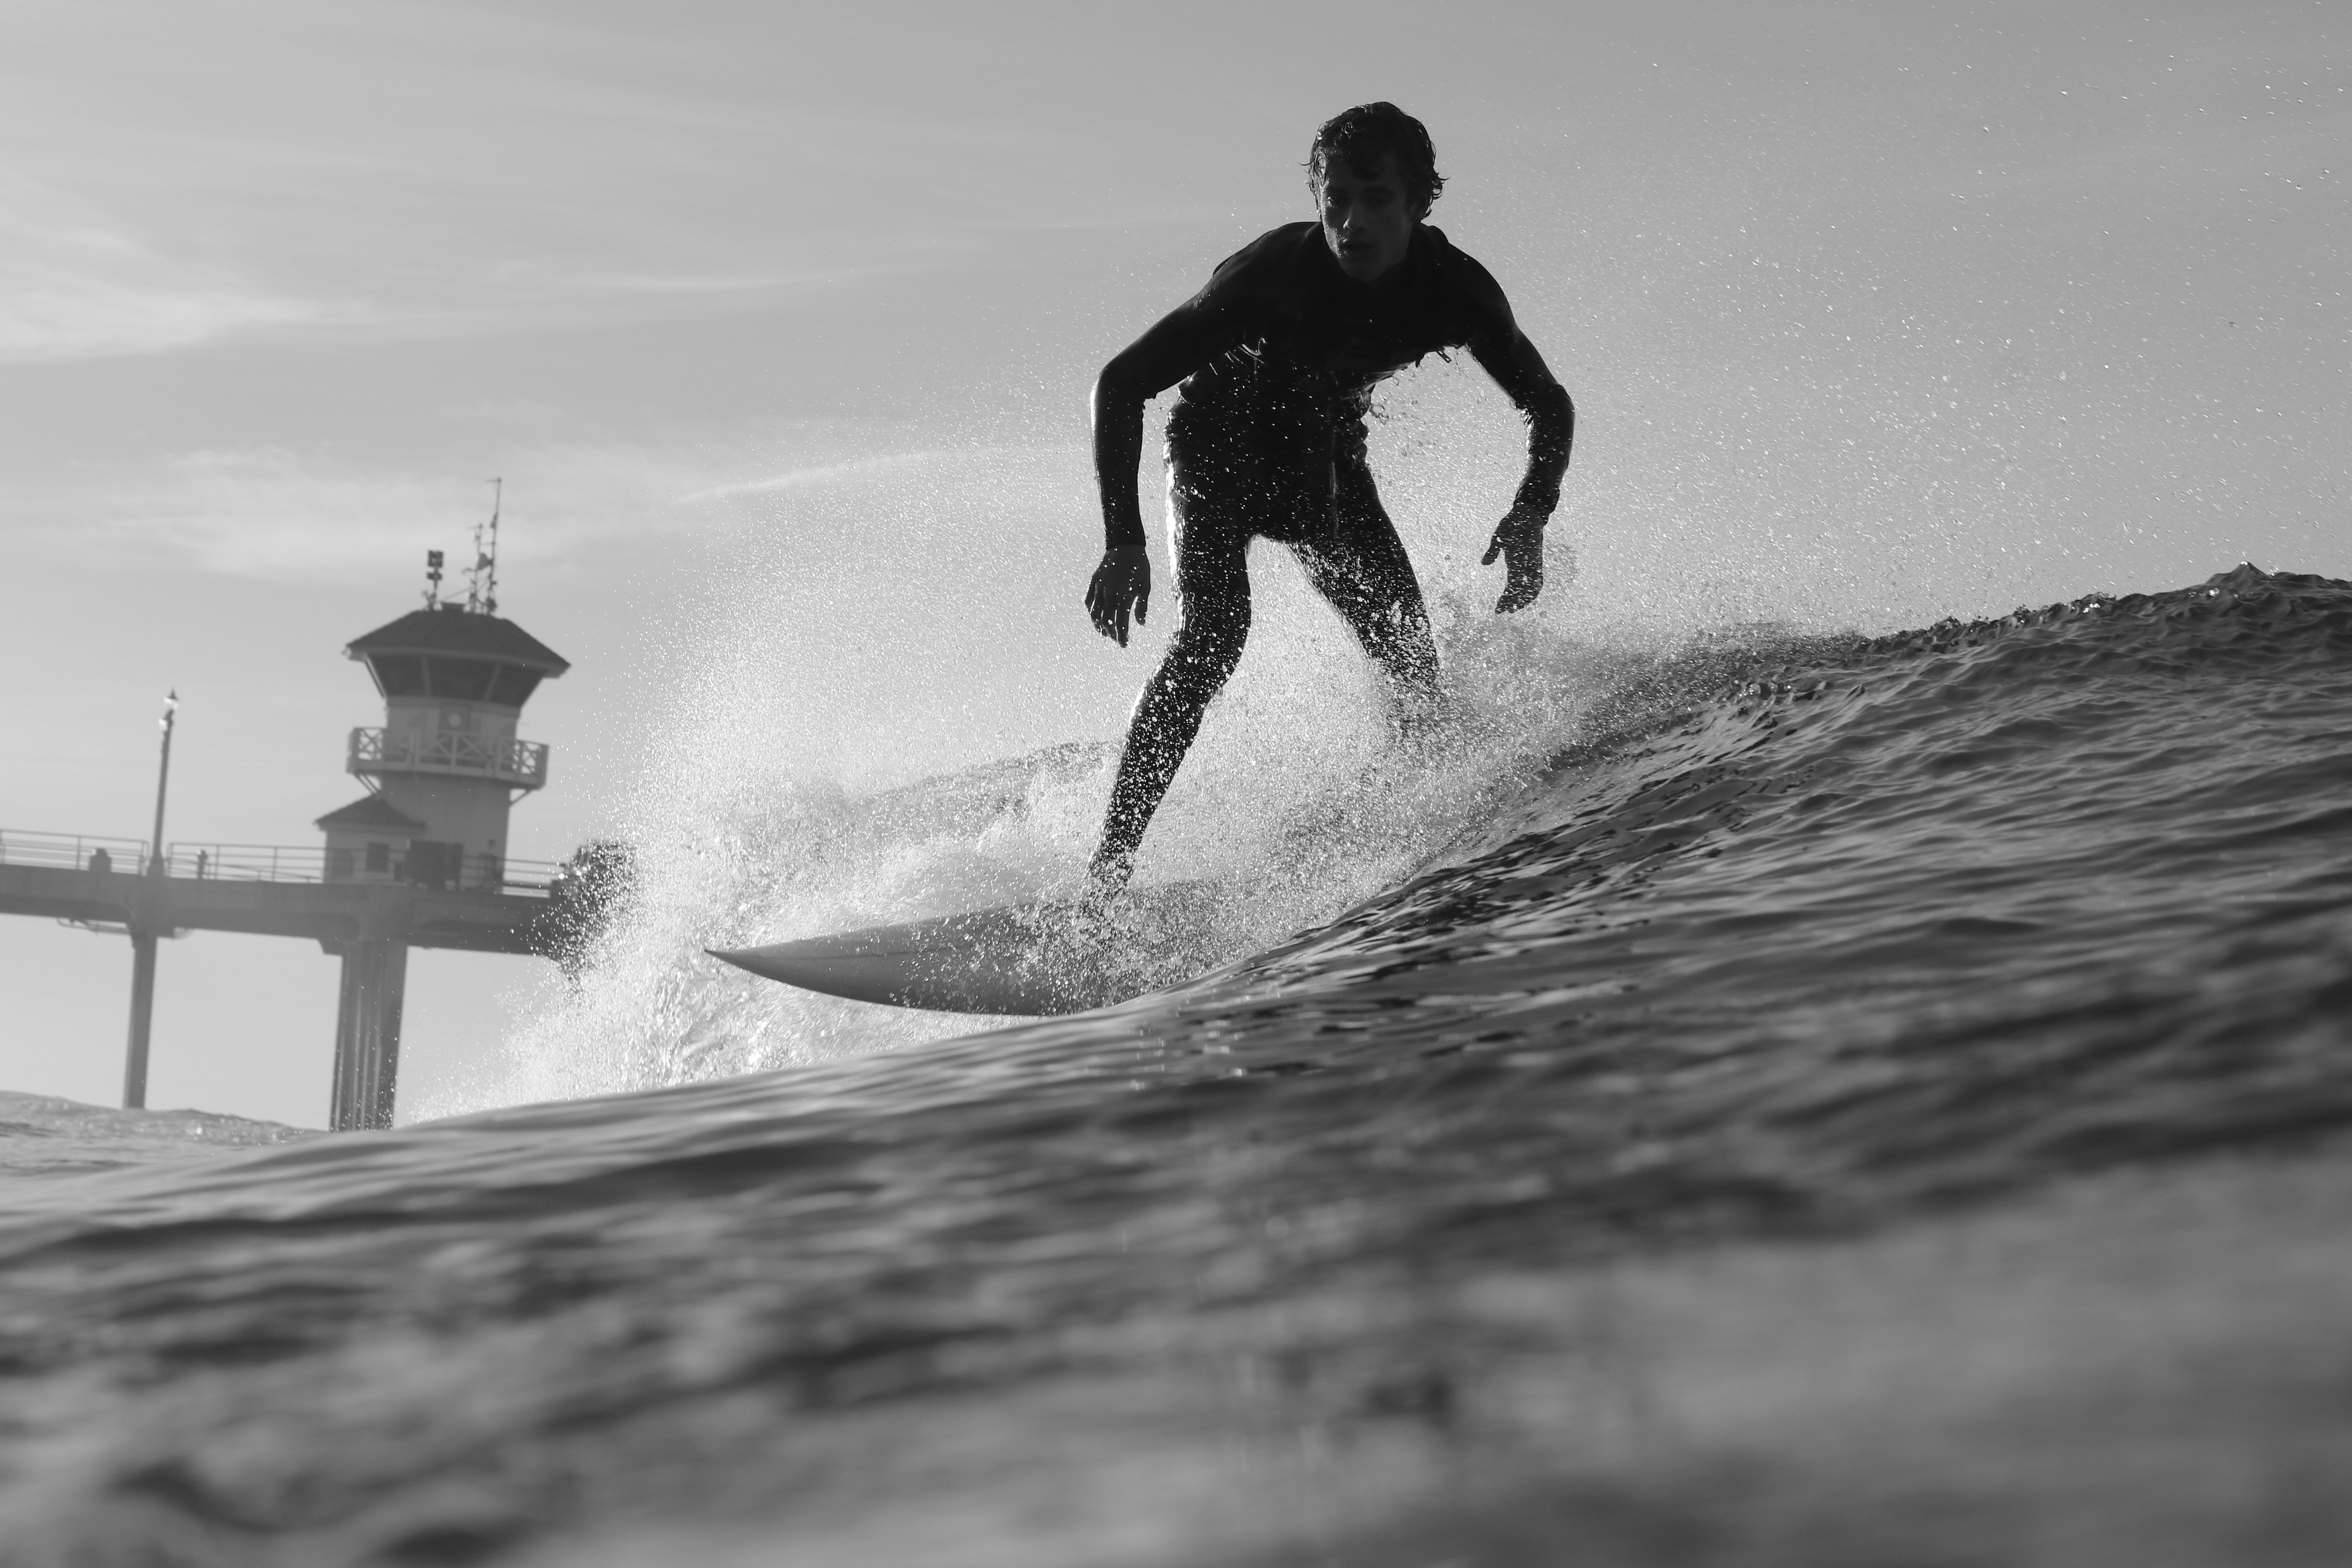 A surfer wearing a wetsuit, catching a wave in Huntington Beach right by the pier